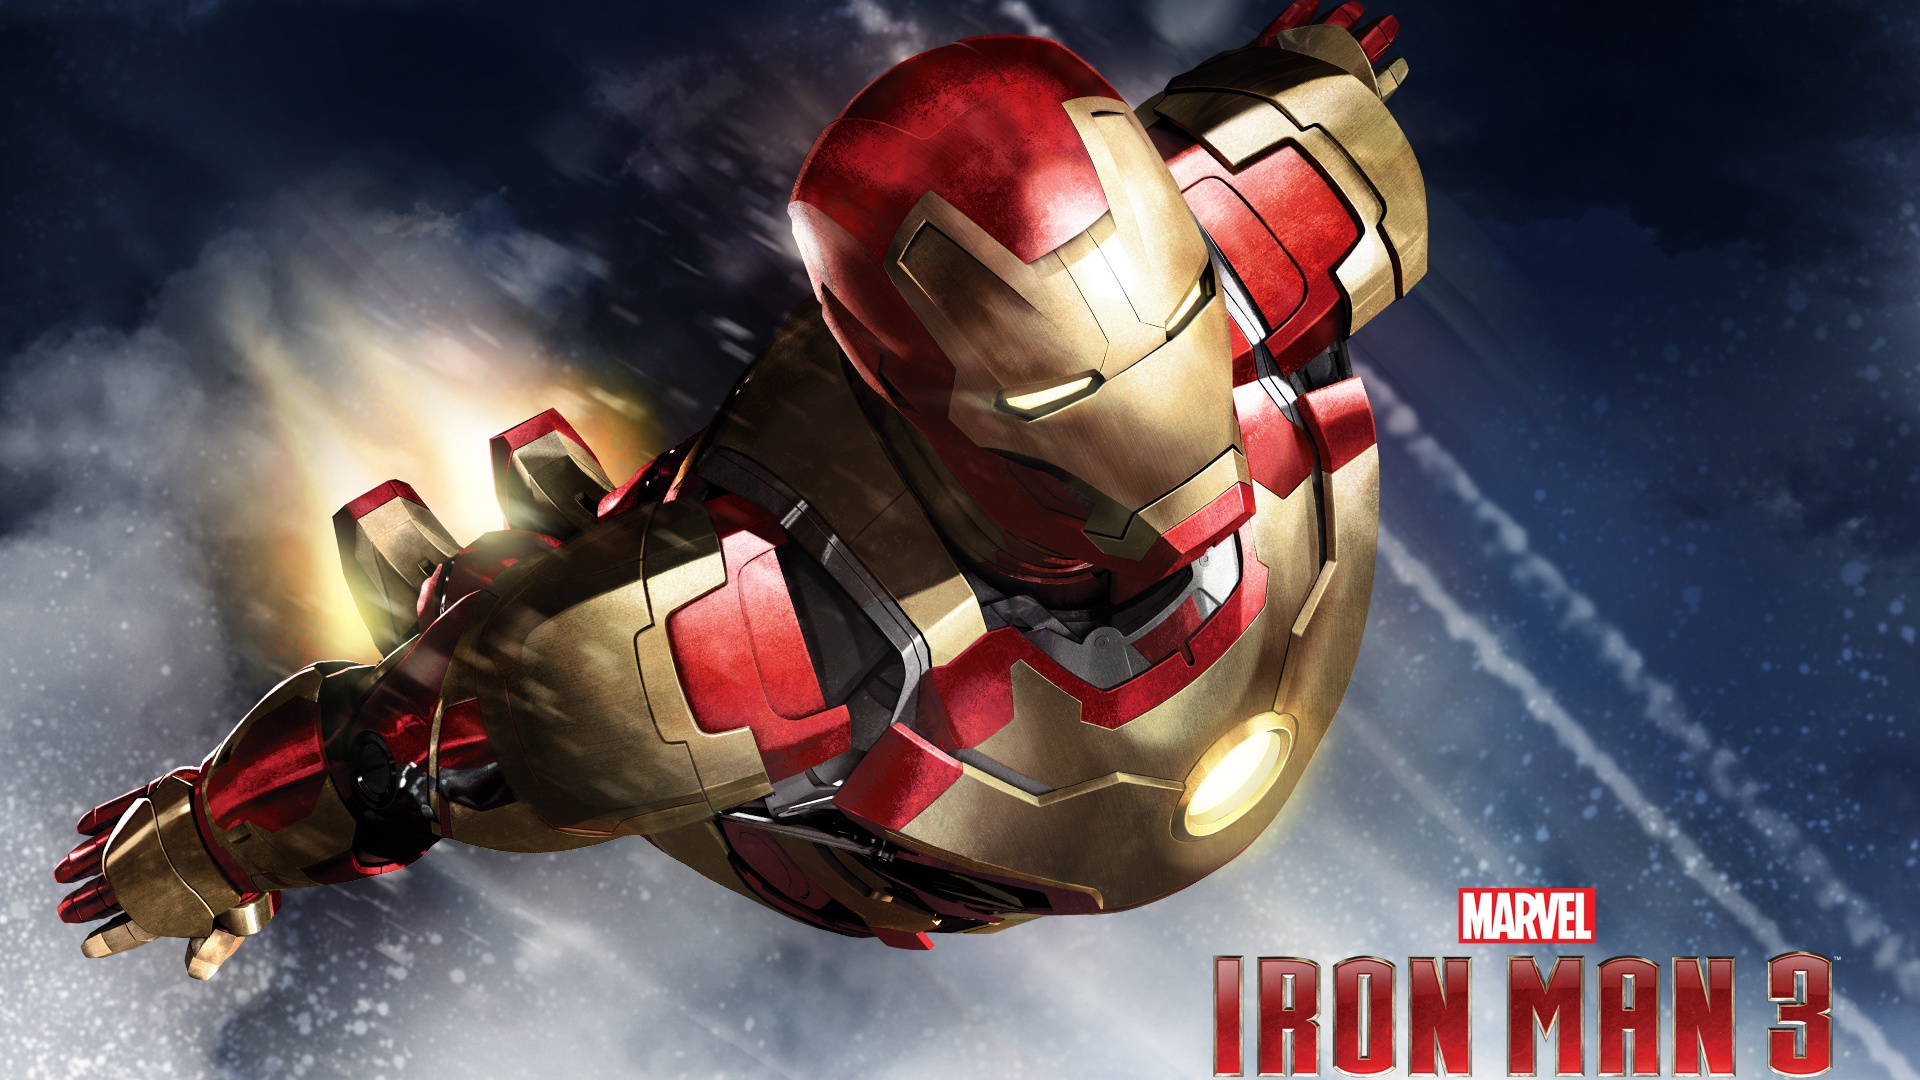 iron man   films hd fonds d'écran x fonds d'écran de